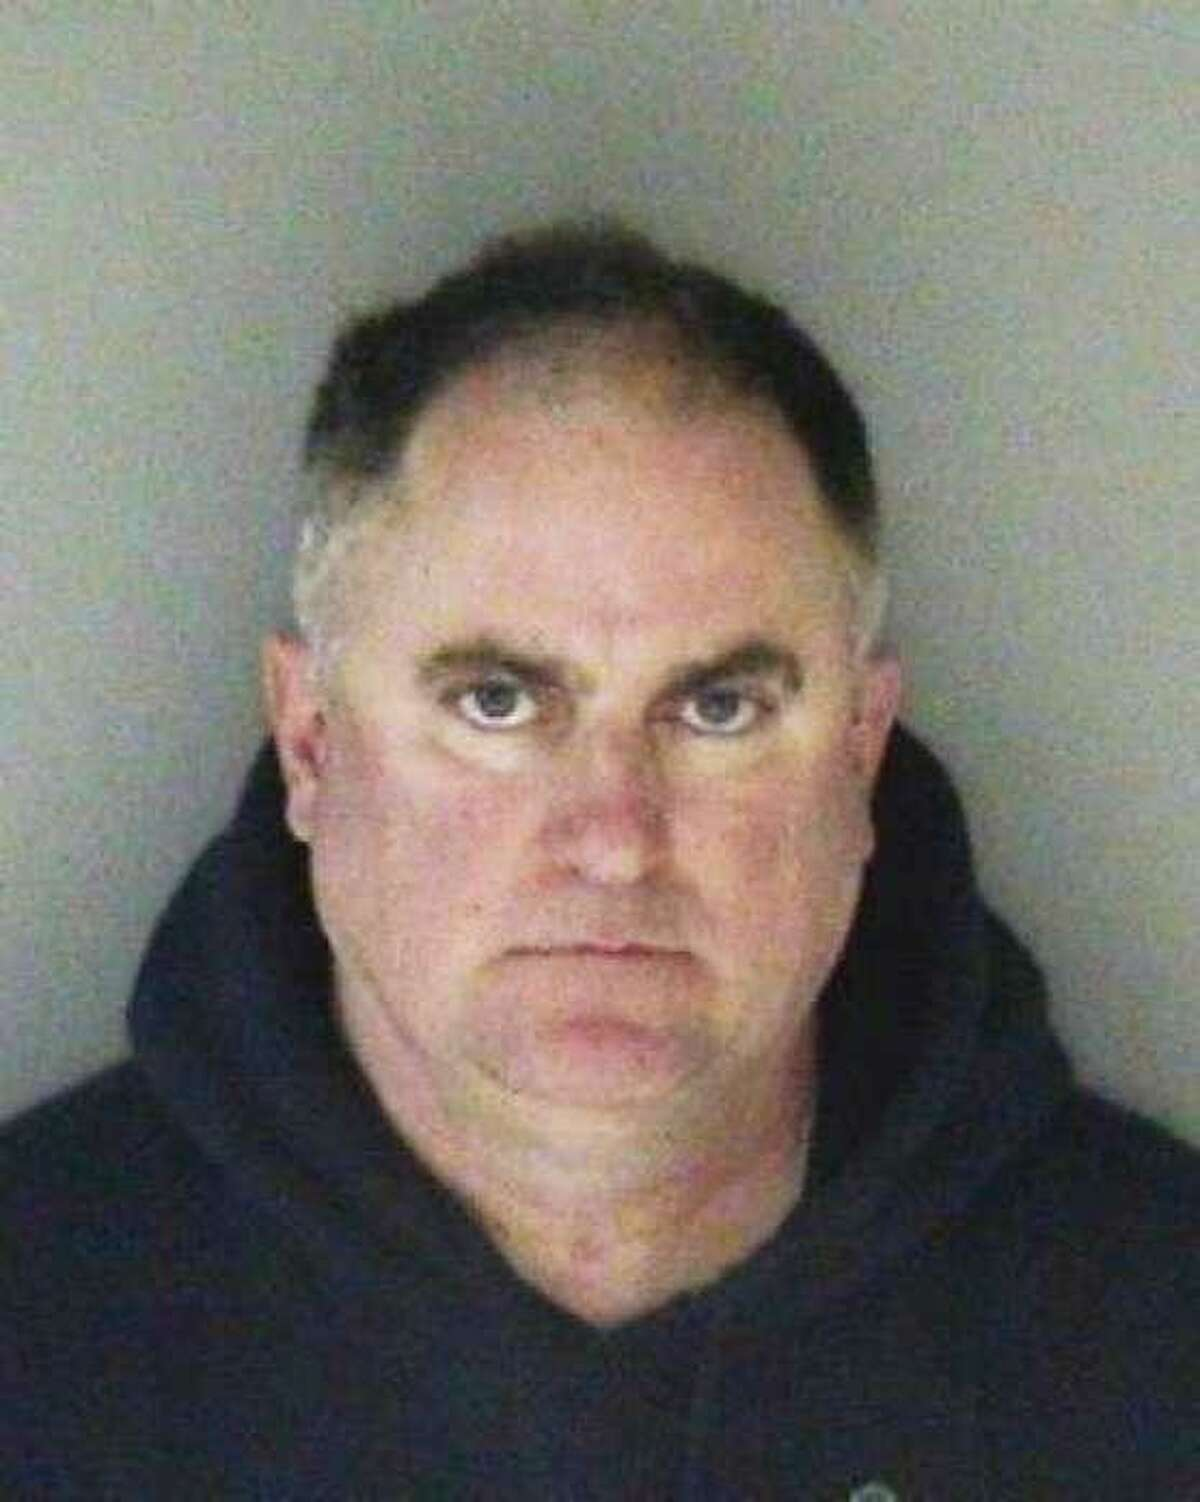 Daniel Black, a former Livermore police officer, pleaded no contest Thursday to one count of engaging in lewd conduct in public. The plea deal was reached on the eve of trial.